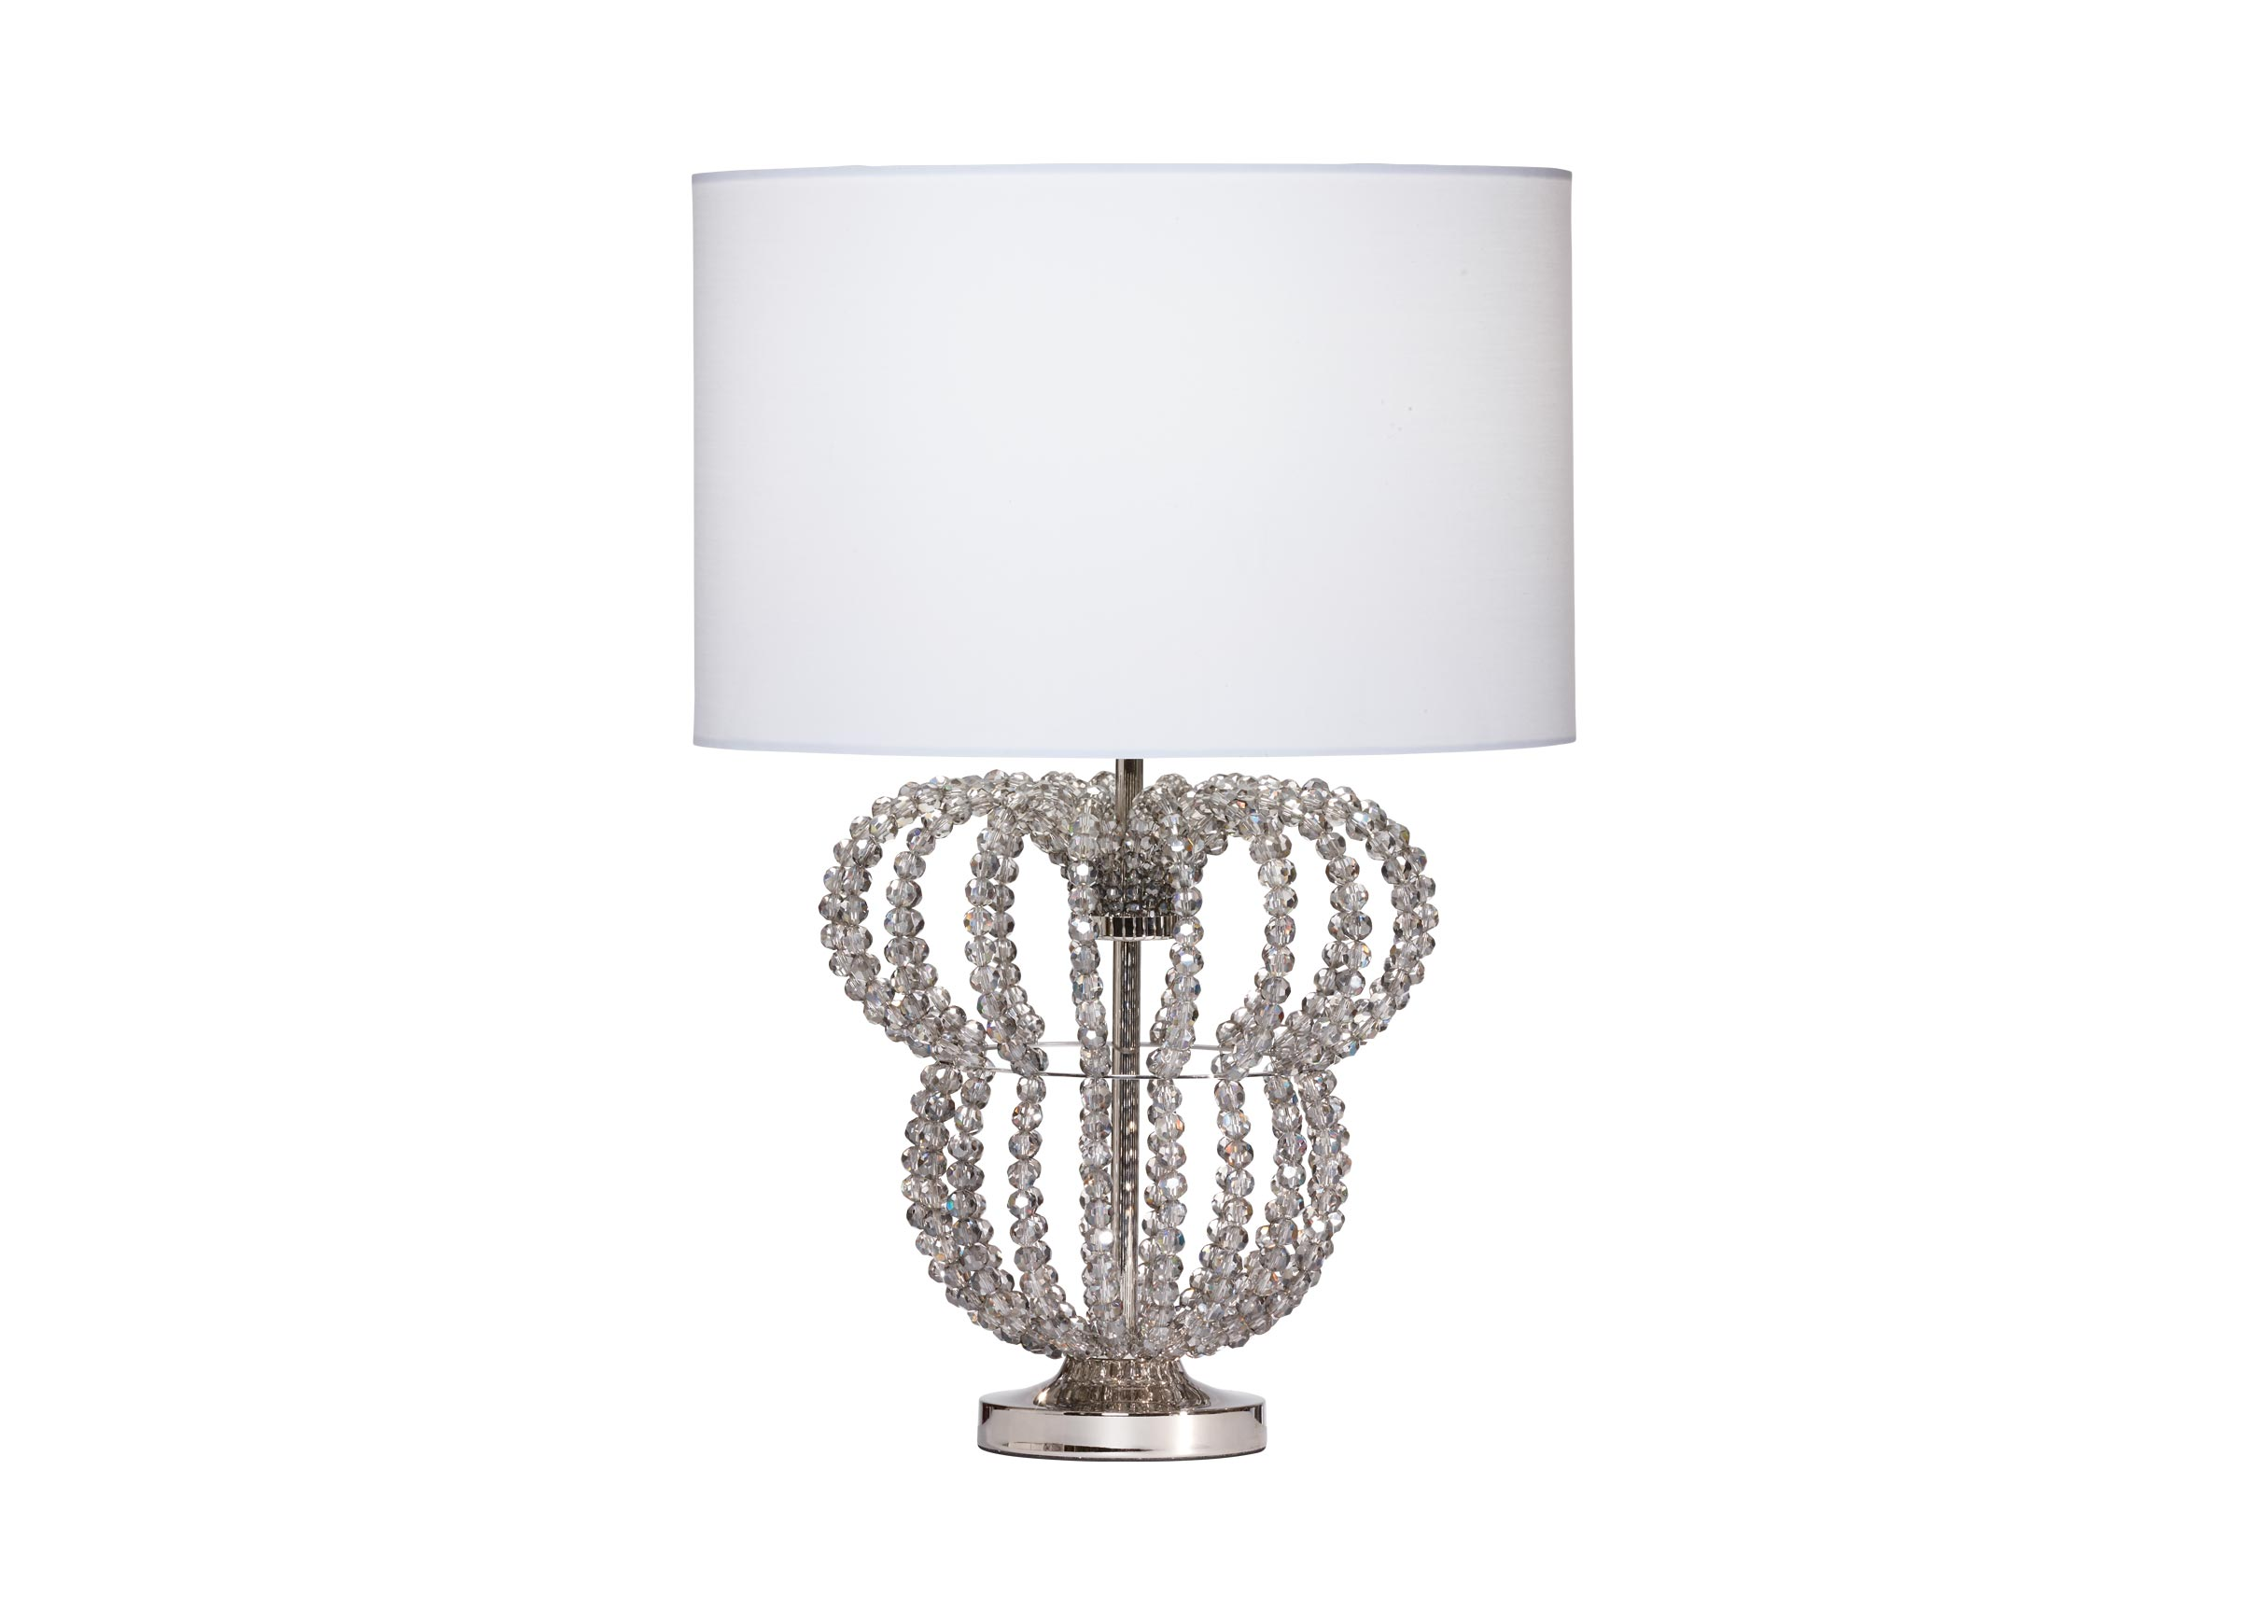 Minnie beaded accent lamp desk accent lamps ethan allen images beaded steel aloadofball Image collections